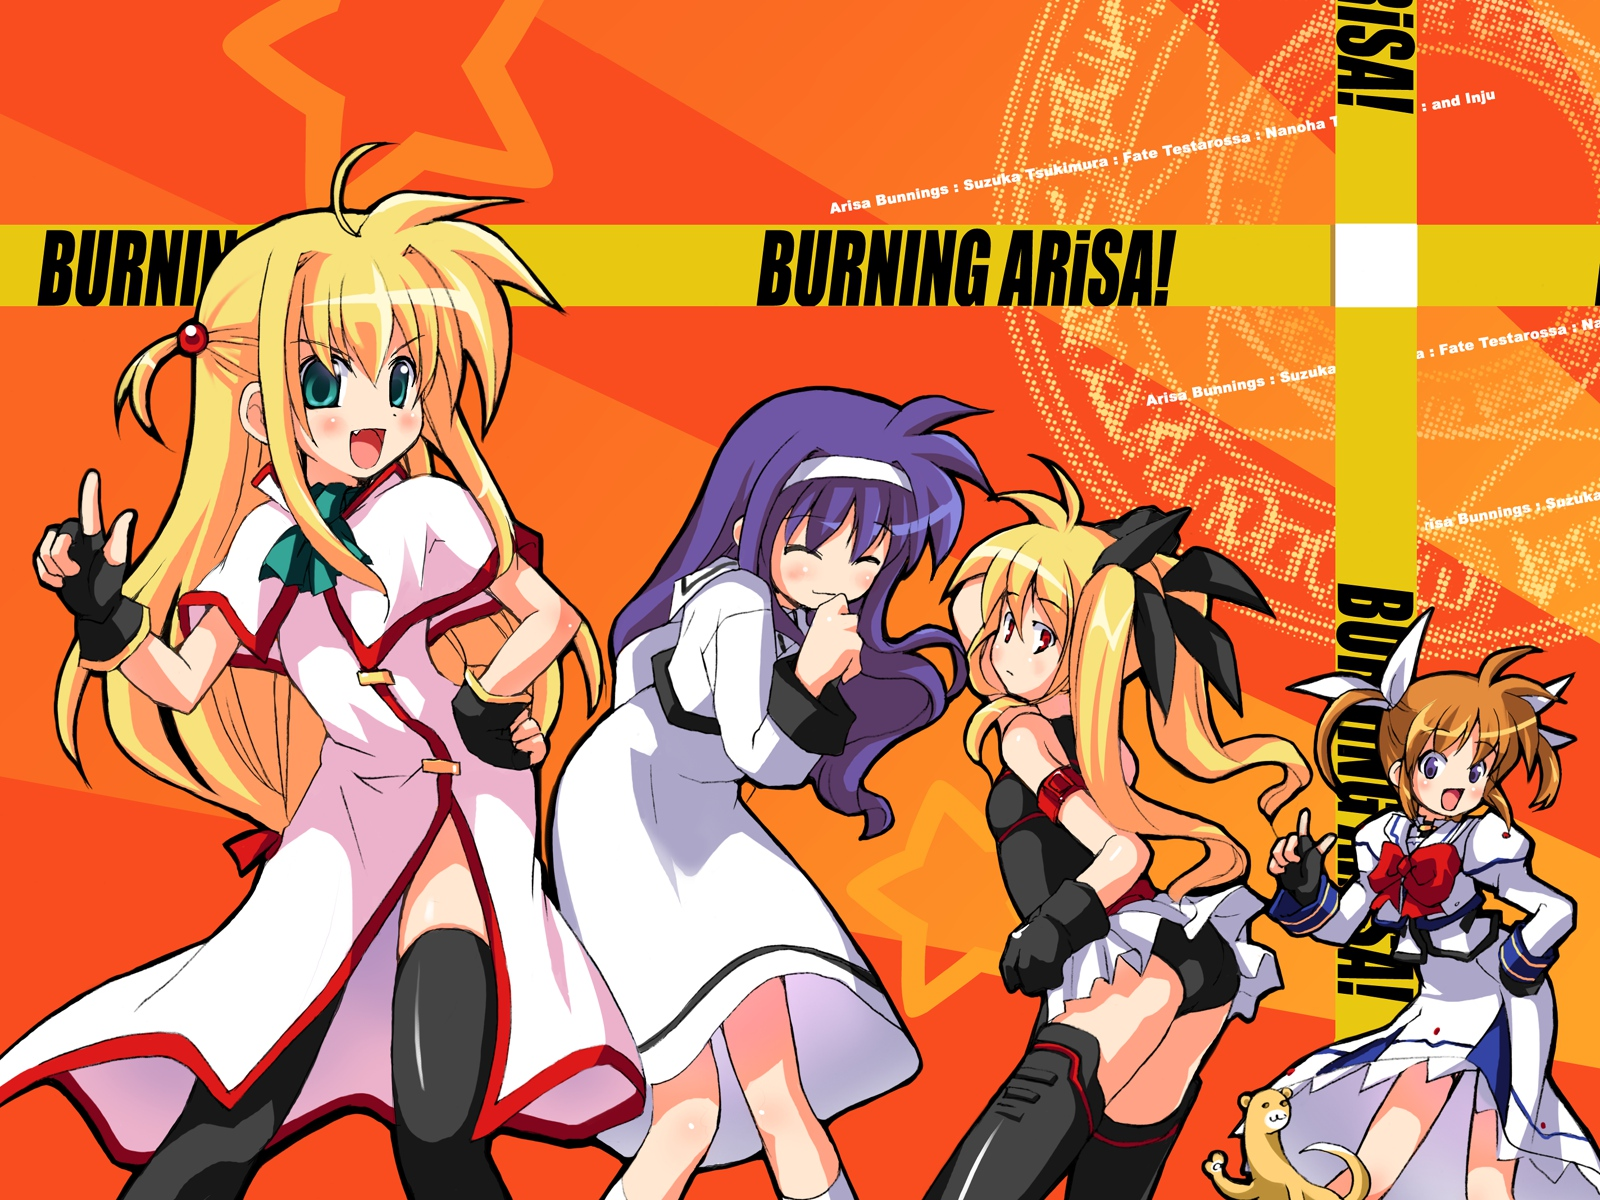 galaxy_angel galaxy_angel_rune mahou_shoujo_lyrical_nanoha parody